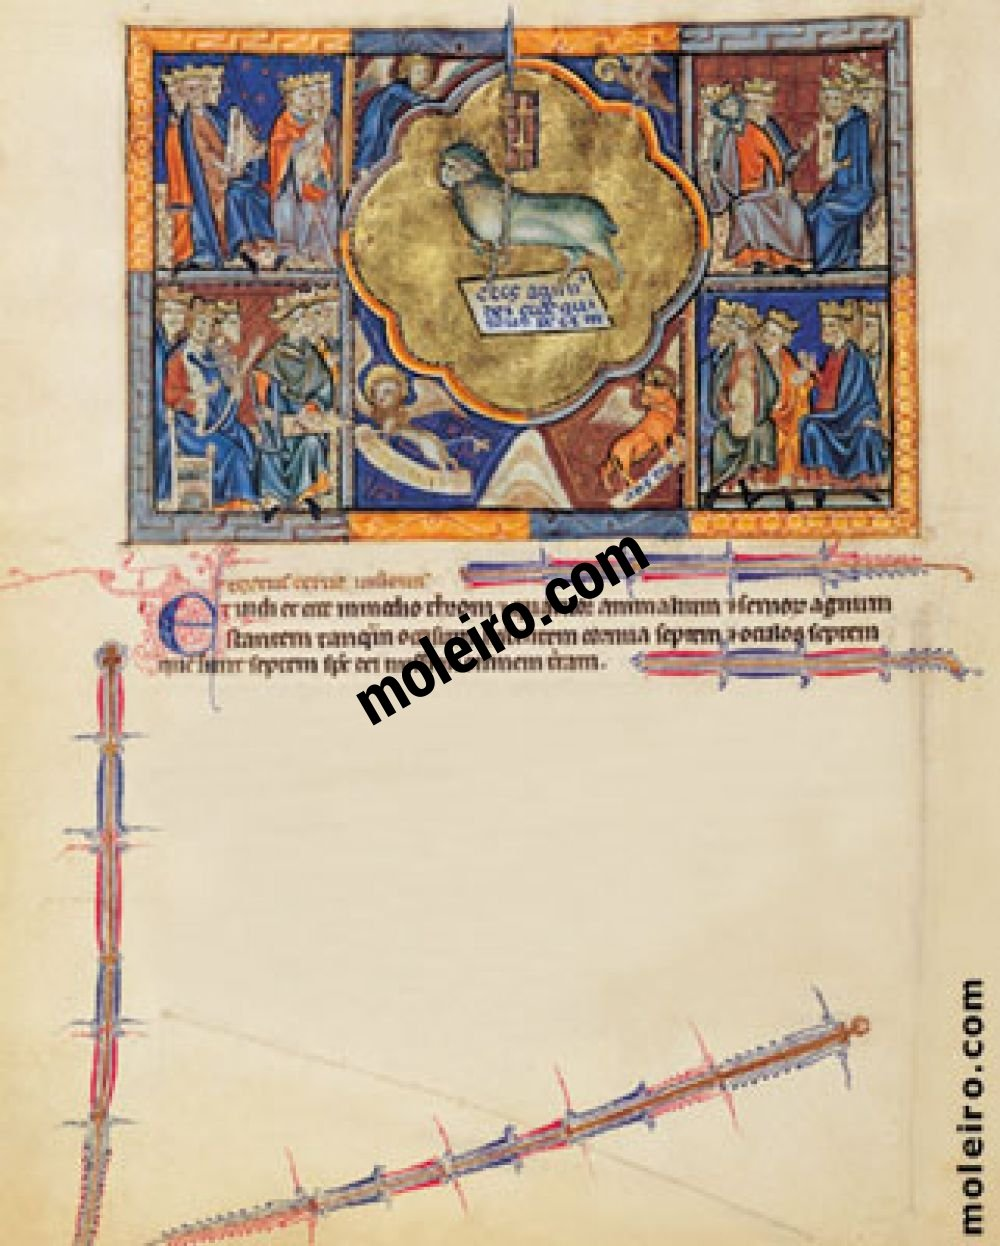 Gulbenkian Apocalypse f. 5v, The vision of the Lamb in heaven